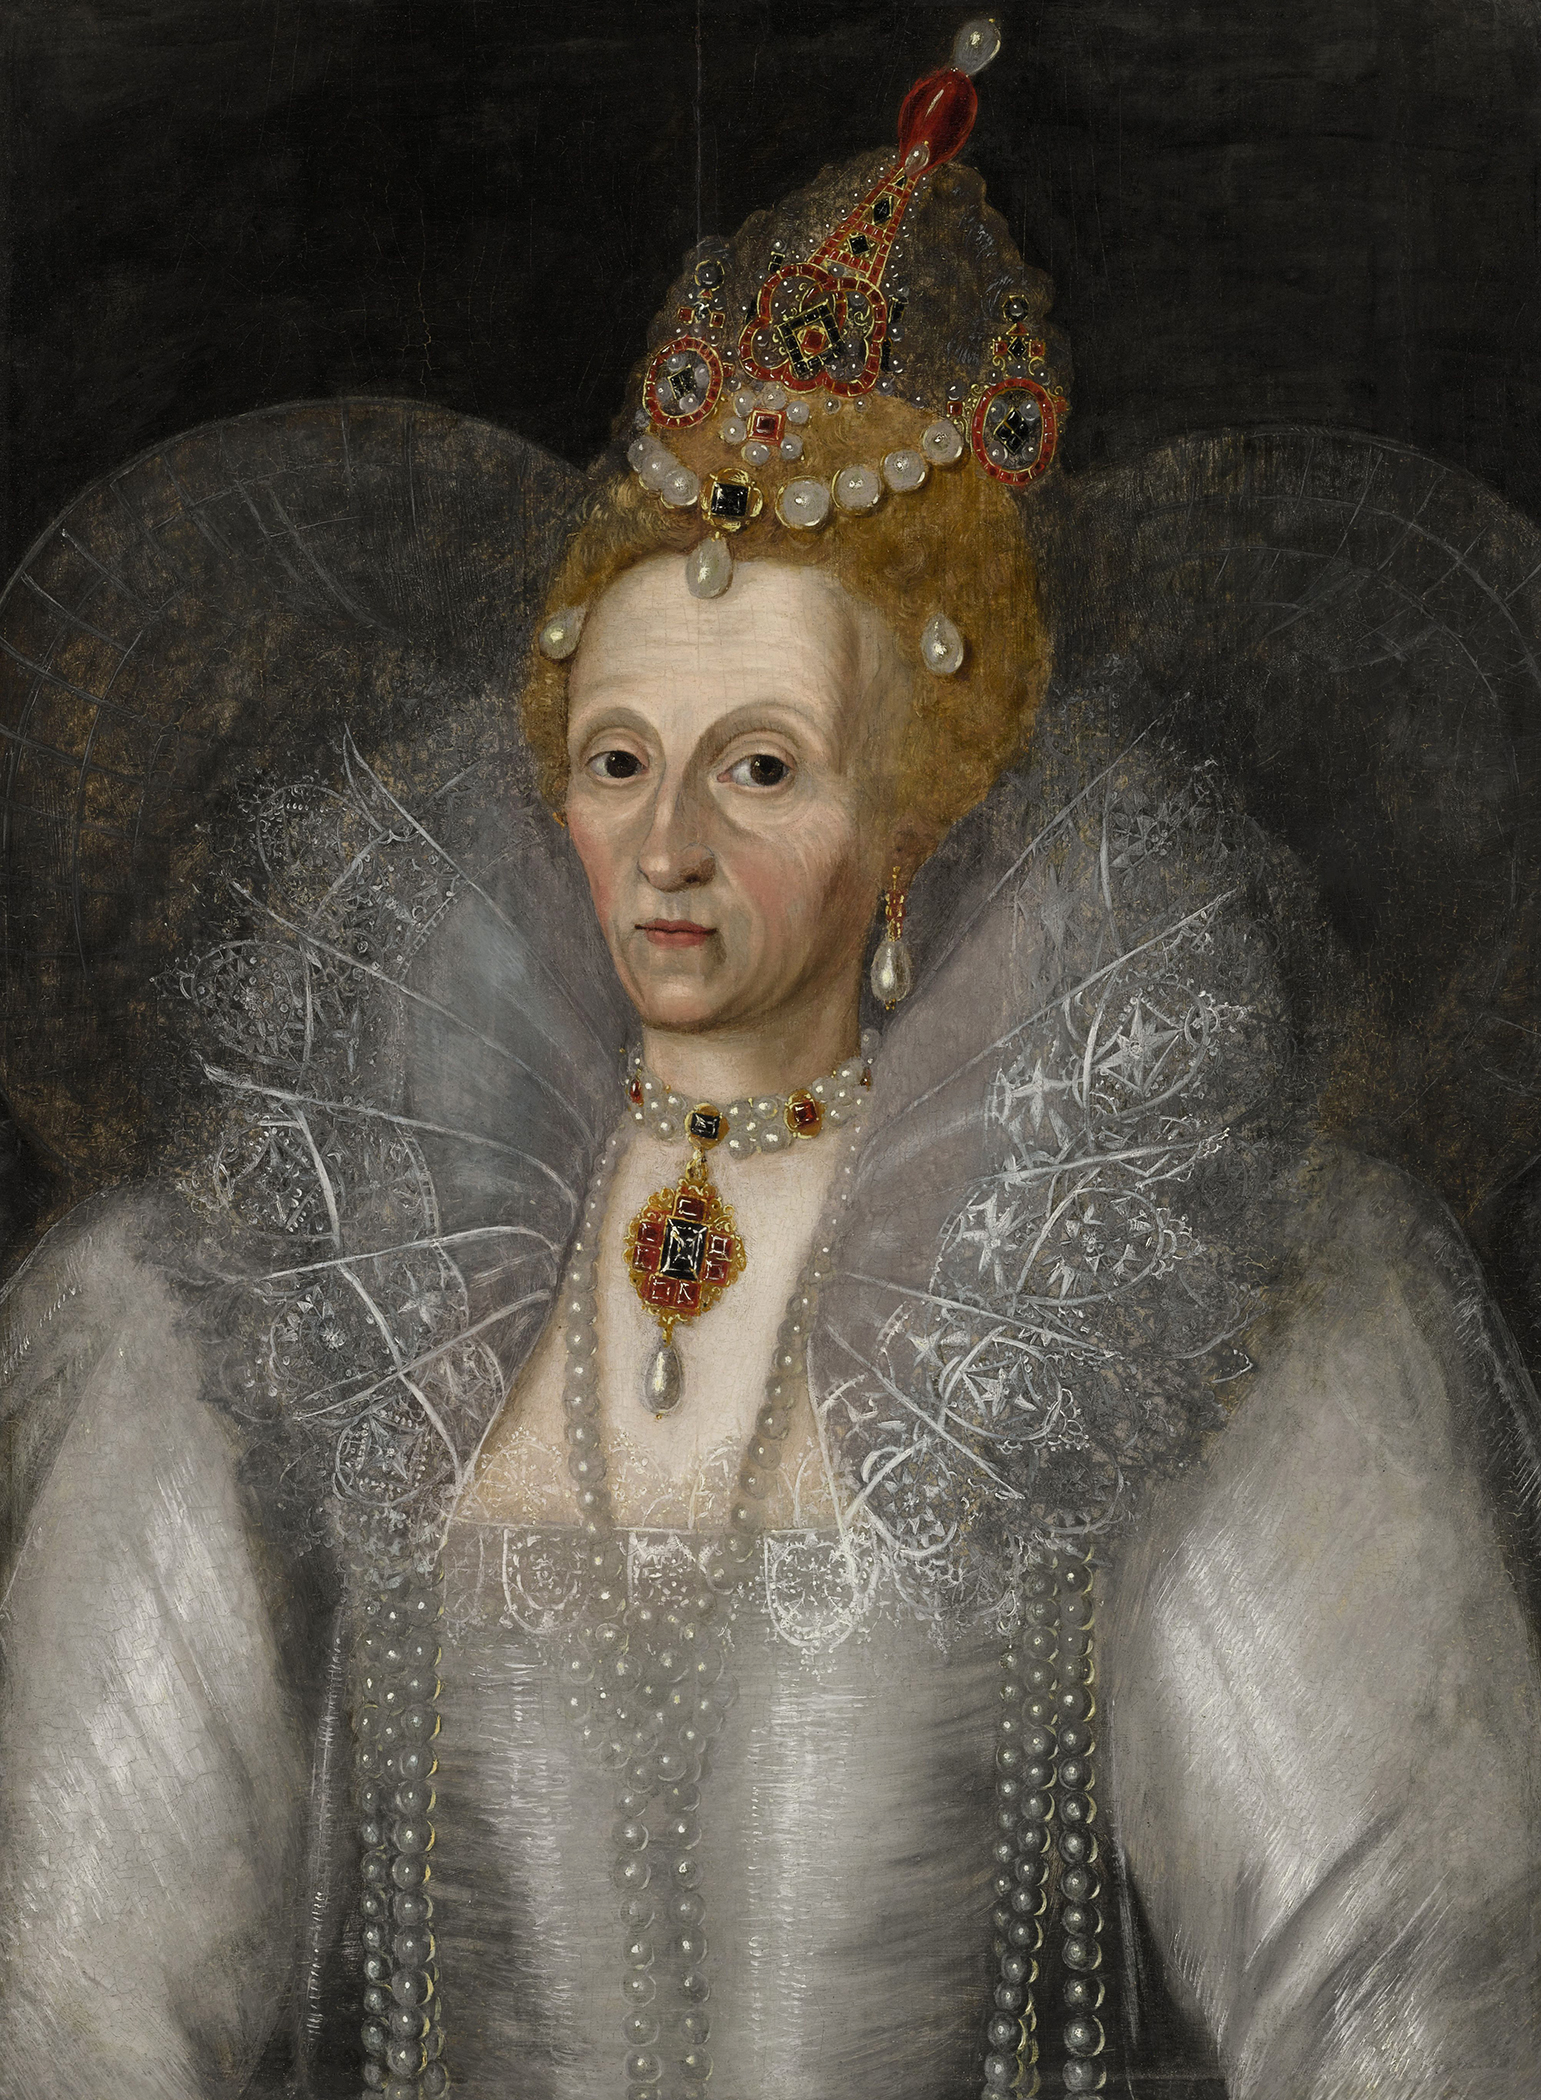 Portrait of Elizabeth I (1533-1603), Queen of England and Ireland (1558-1603), 1601 | Portraits of Kings